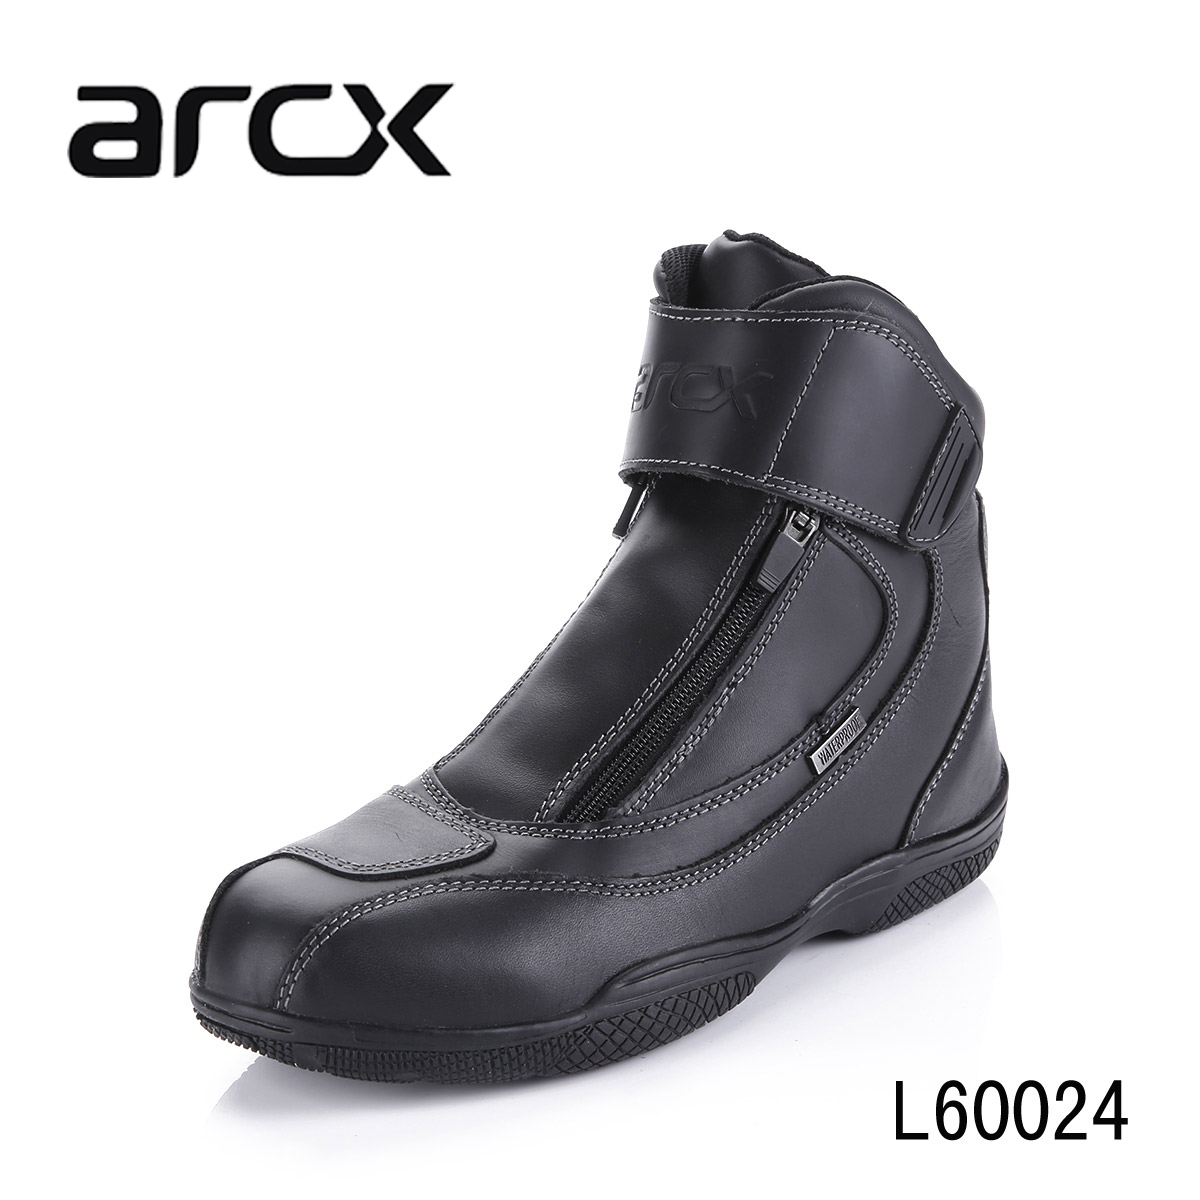 ARCX Waterproof  Boots For Motorcycle Men Racing Leather  Protective Gears  Motorcycle Boots Motocross Boots Motorbike Boots<br><br>Aliexpress